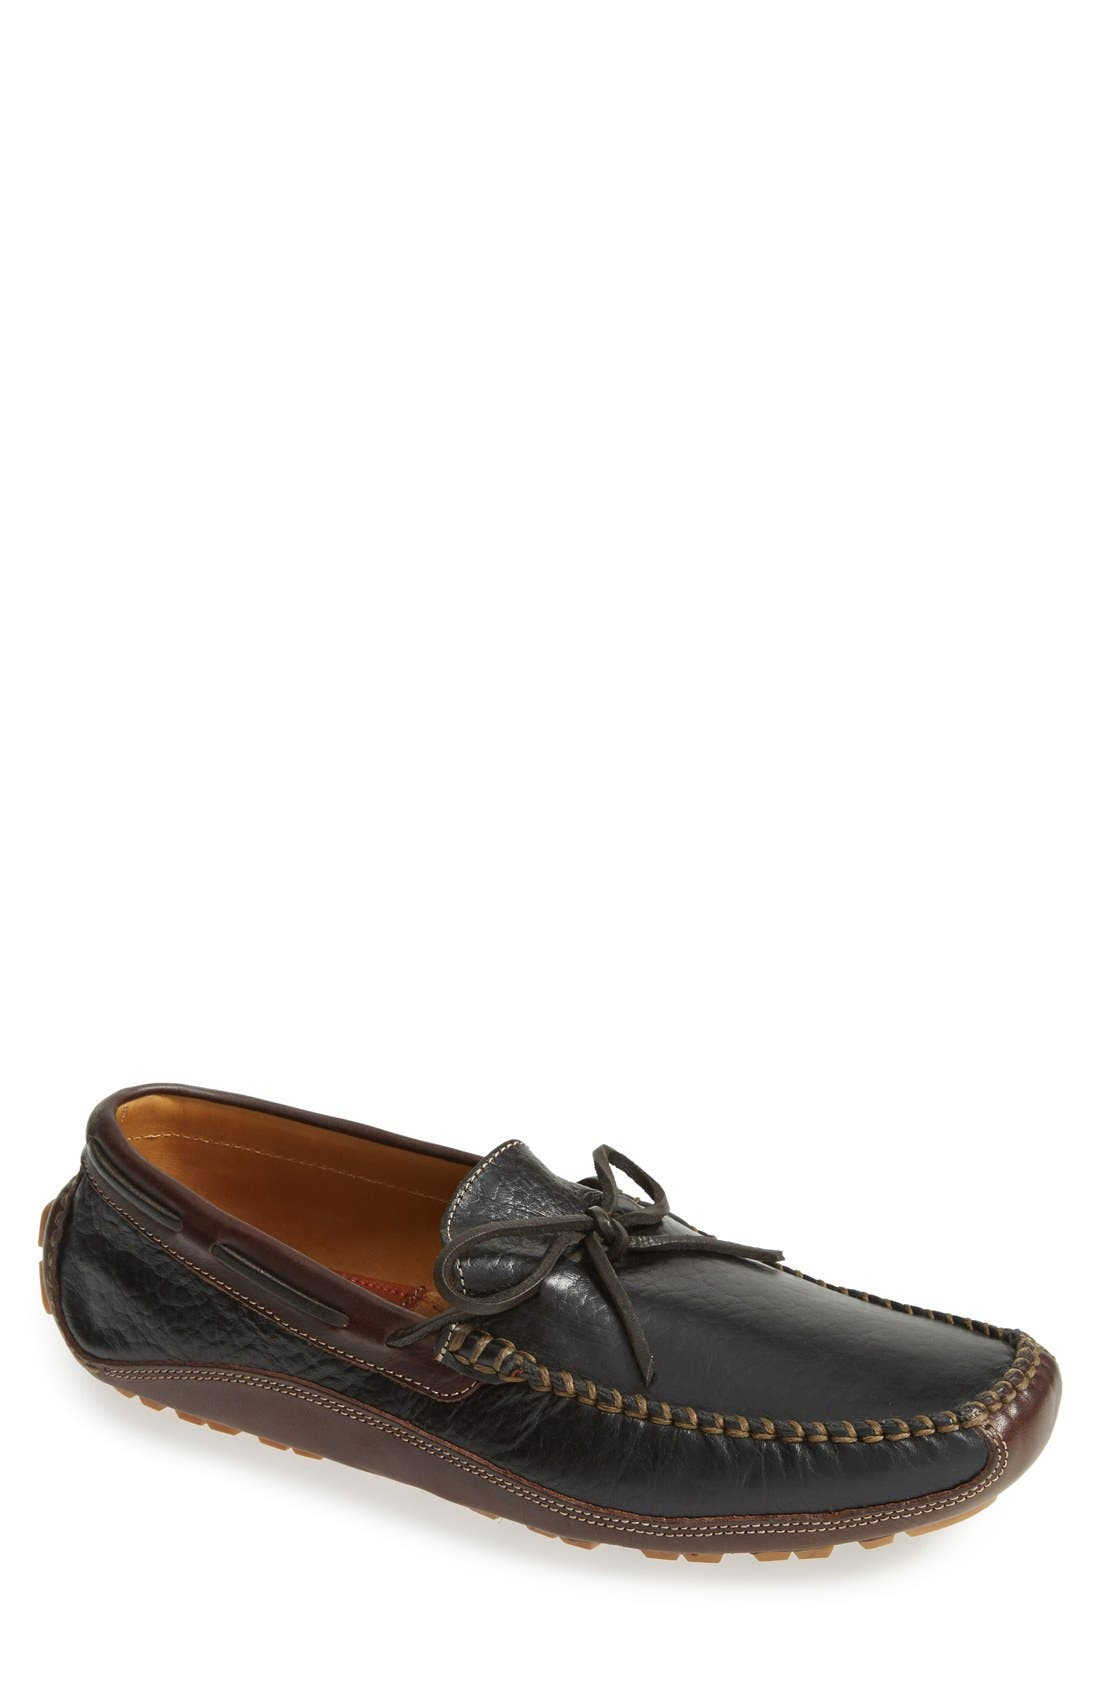 TRASK 'Drake' Leather Driving Shoe, Main, color, 001